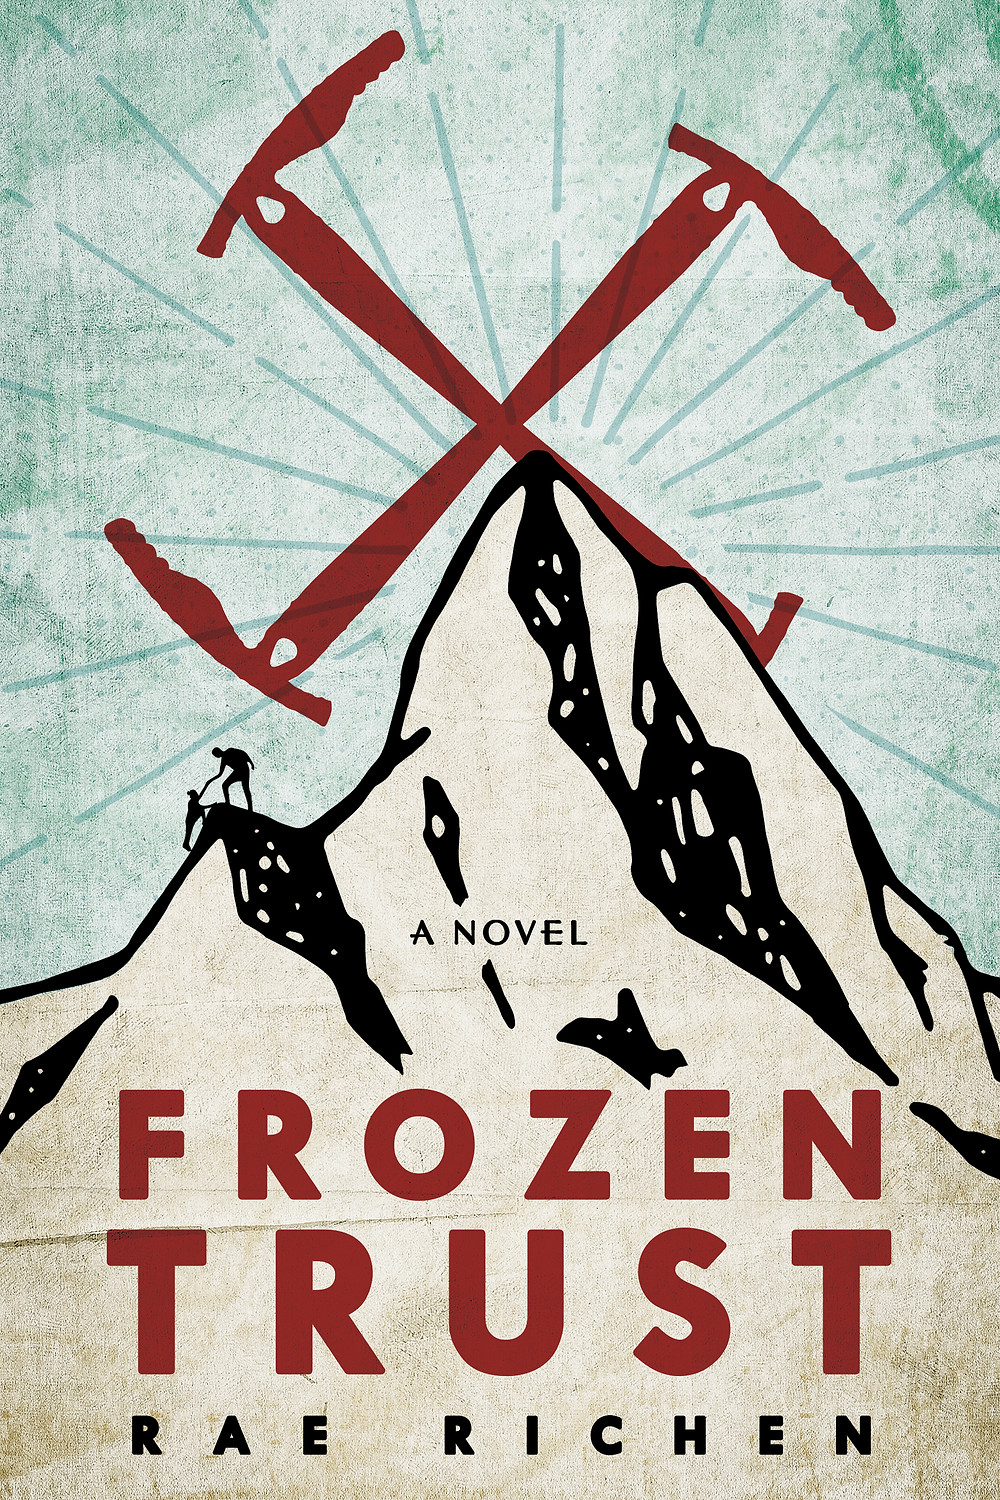 Cover of novel Frozen Trust, mountain, ice axe/sun emblem, two climbers helping each other